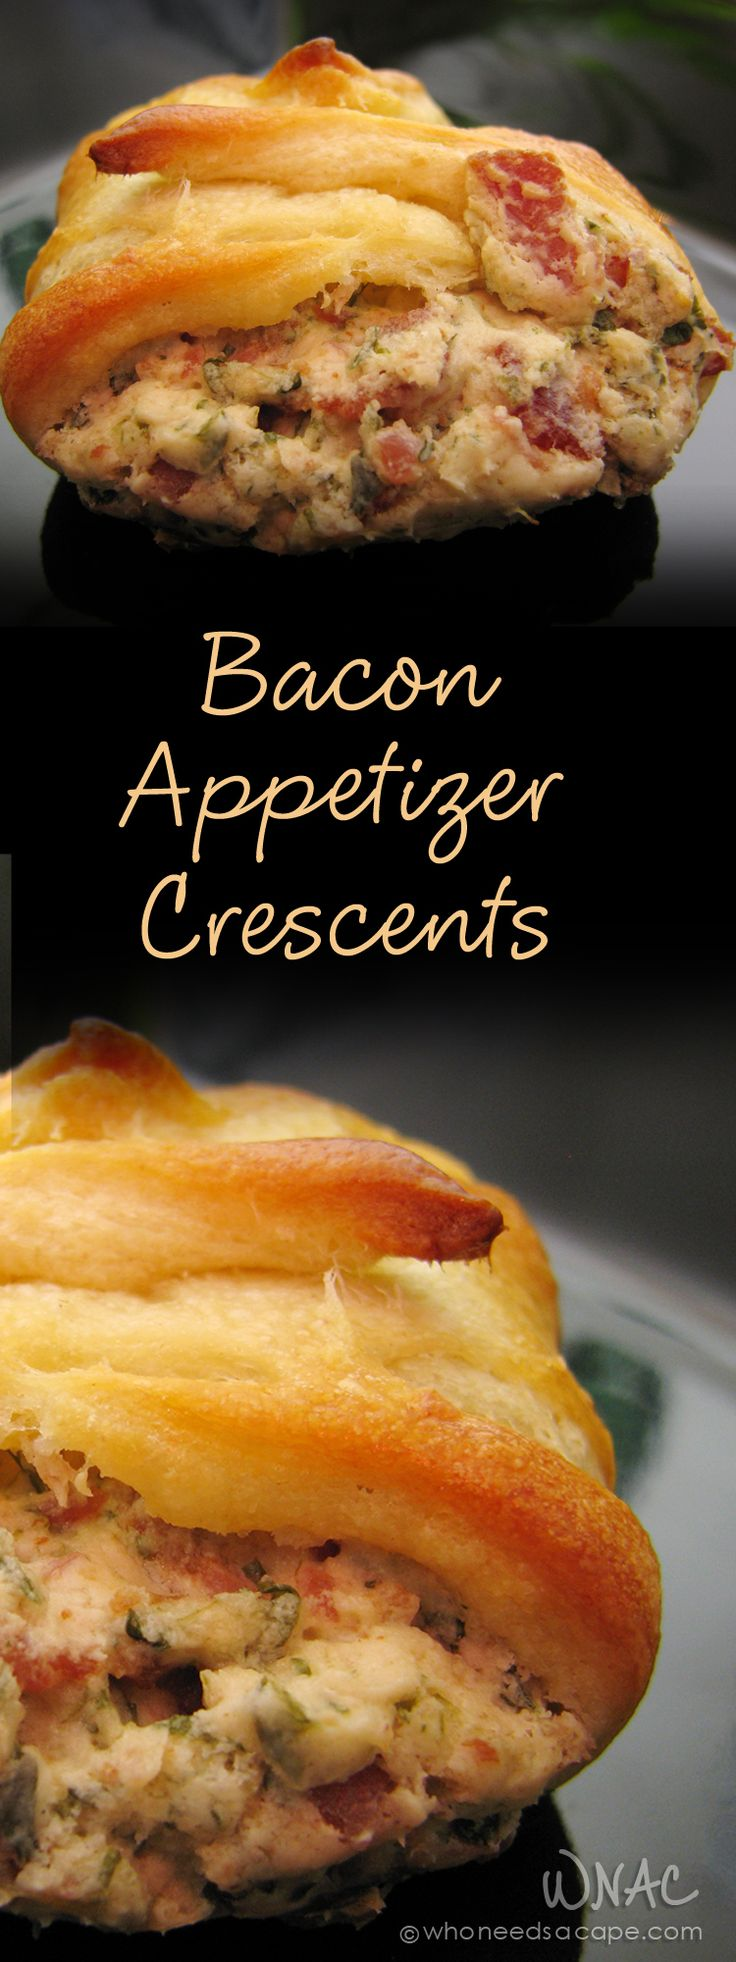 Bacon Appetizer Crescents great for tailgating, parties, holidays or just a snack: